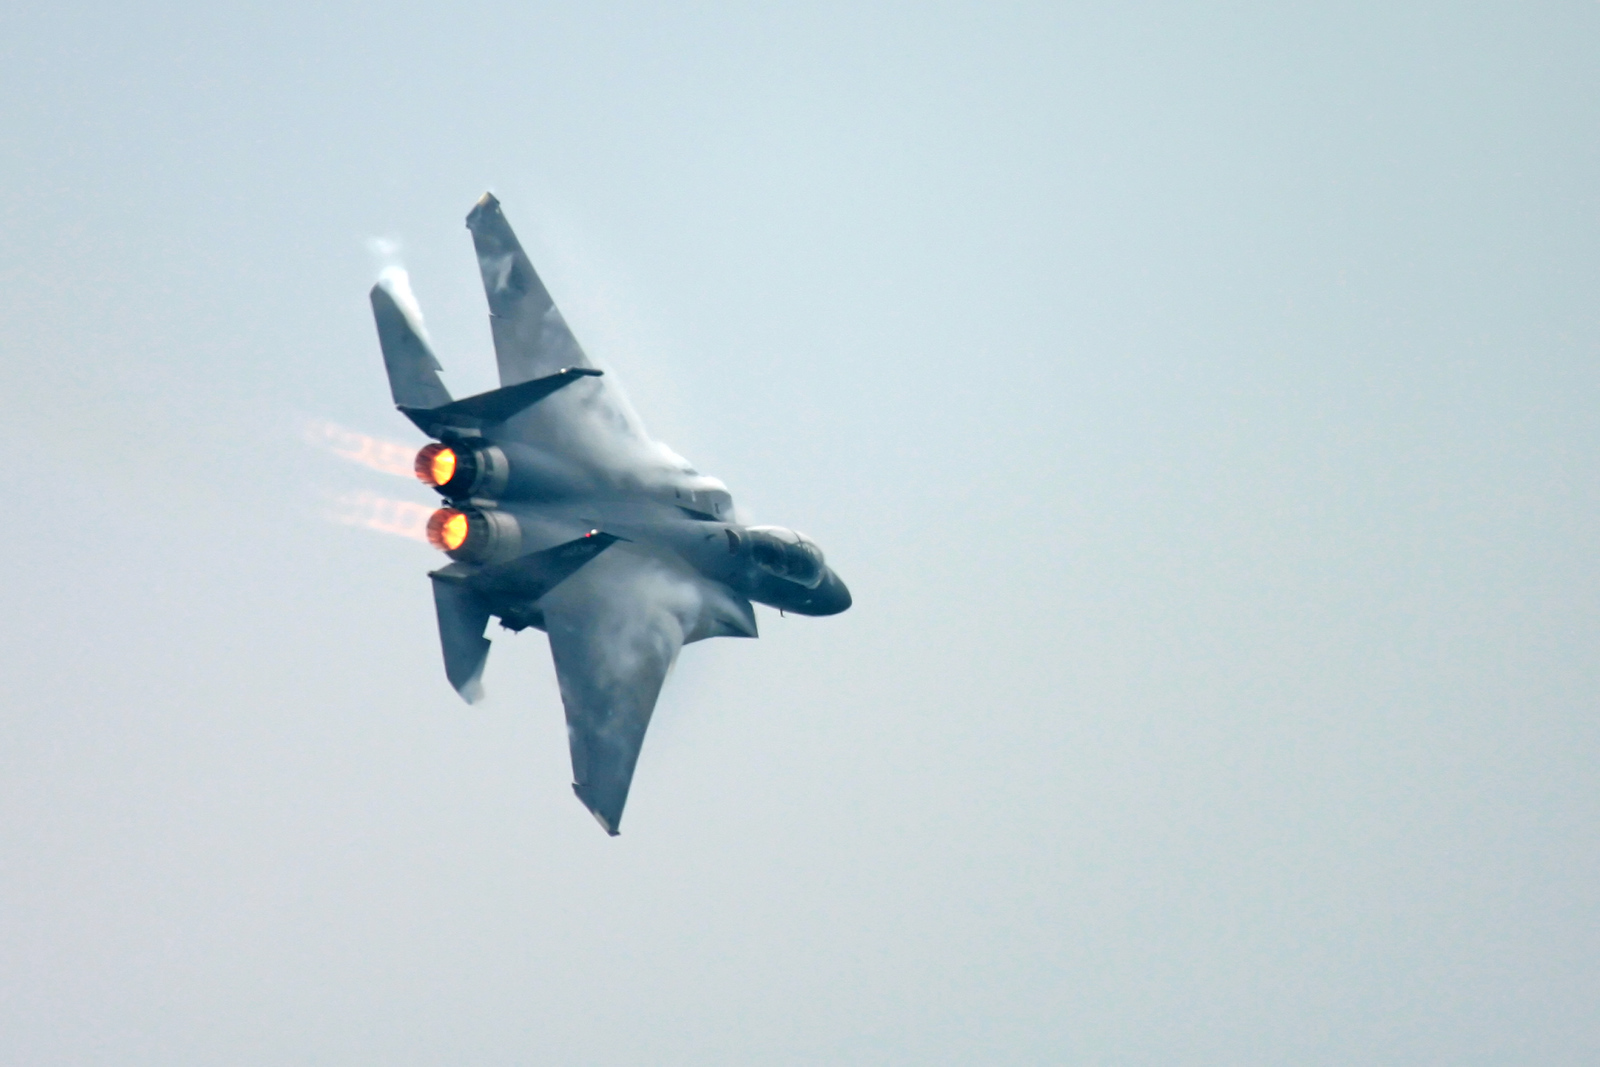 A F15 Eagle fighter jet flying with the afterburners lit up